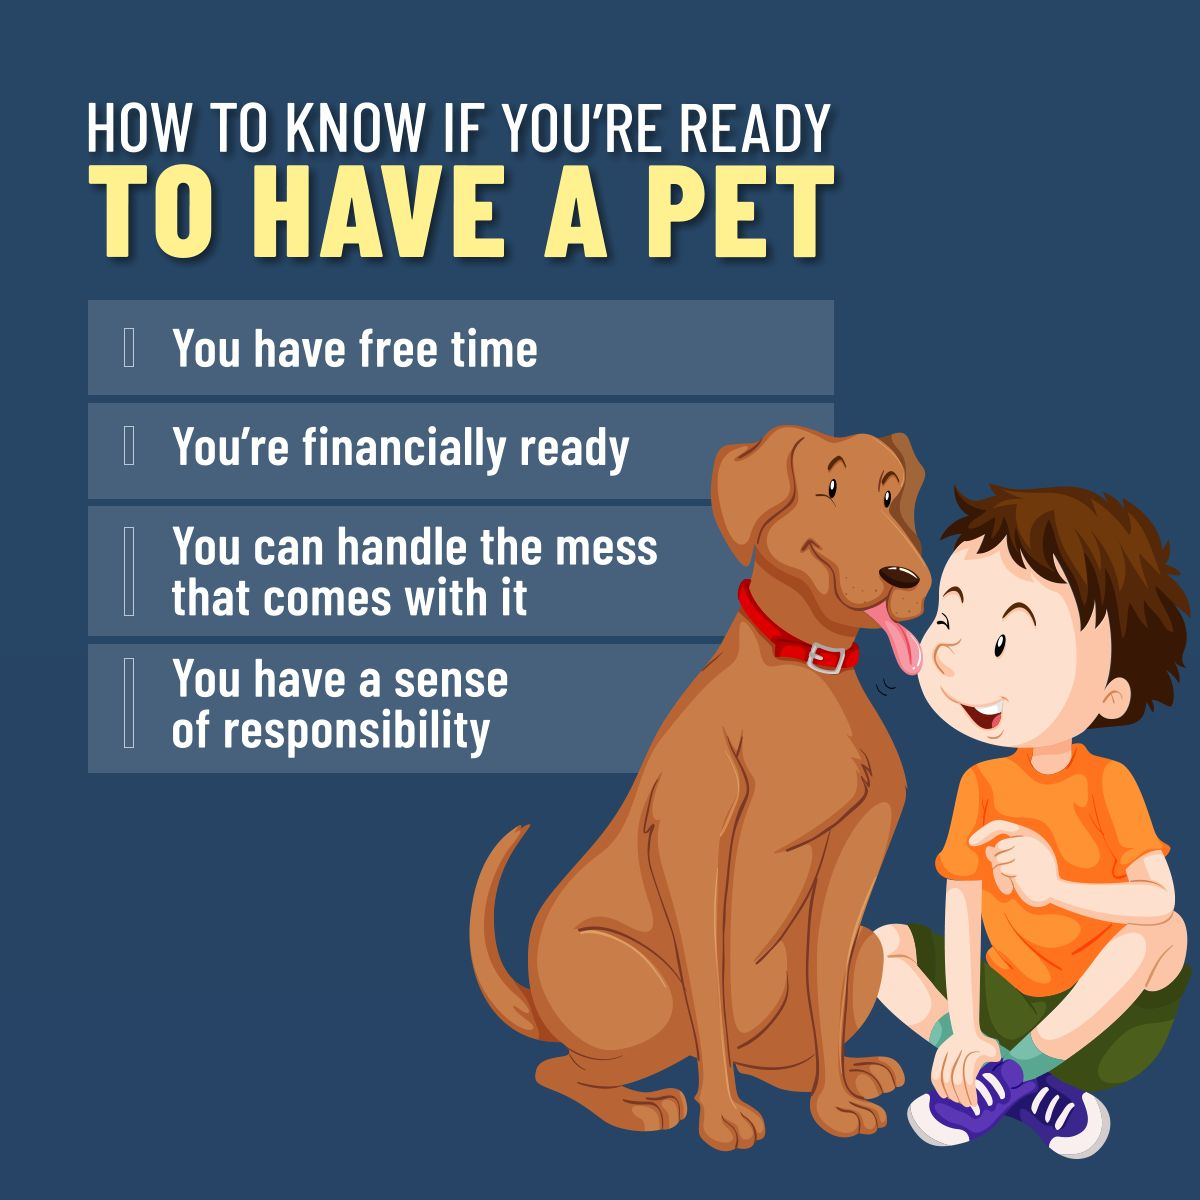 Theinsuredpet 1 Pet Insurance Review Site Top 8 Best Affordable Plans Pet Insurance Reviews How To Know Pets